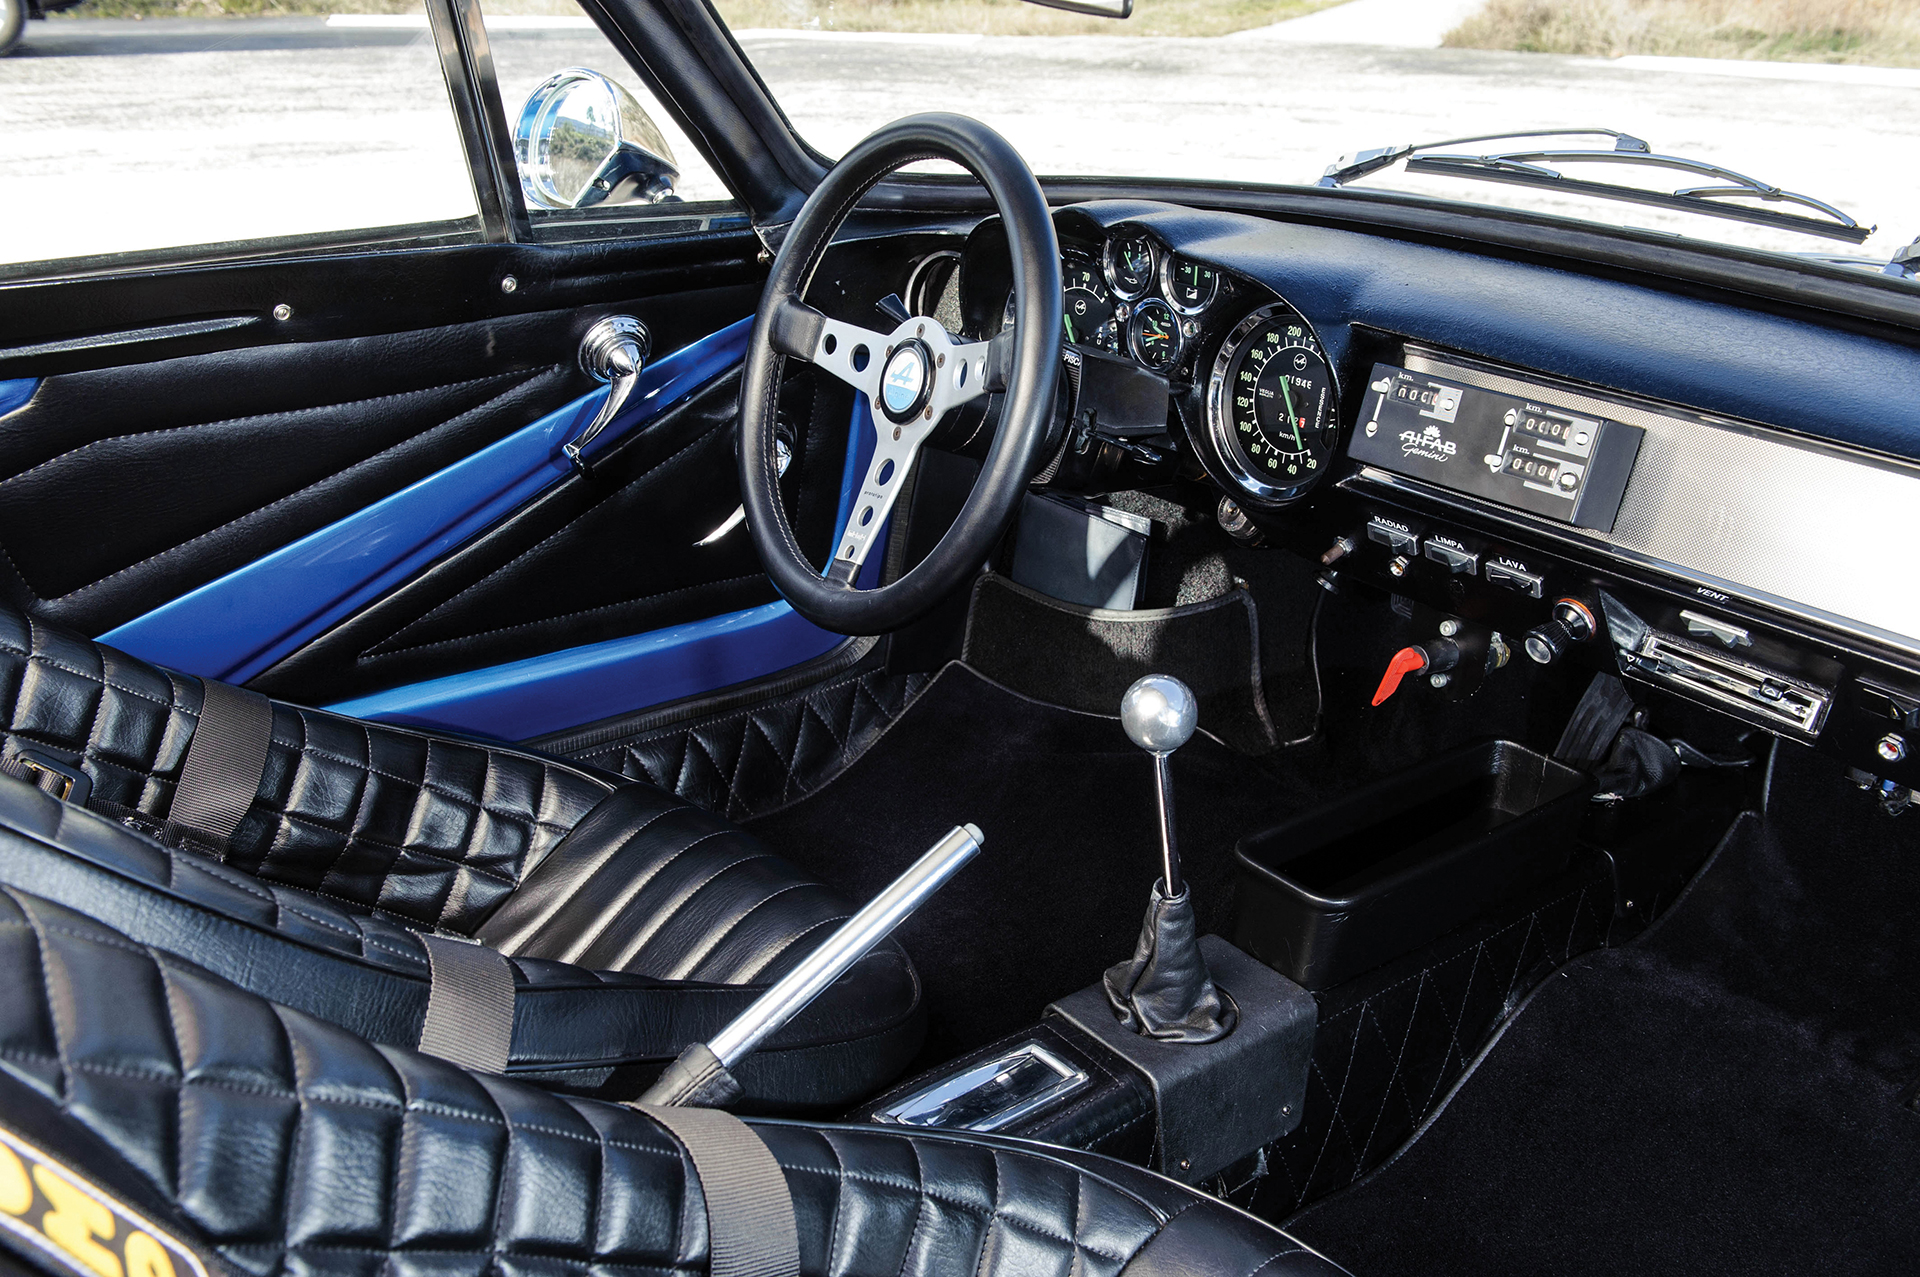 Alpine A110 1600S - volant / steering wheel - Photo Tom Wood 2015 Courtesy of RM Auctions